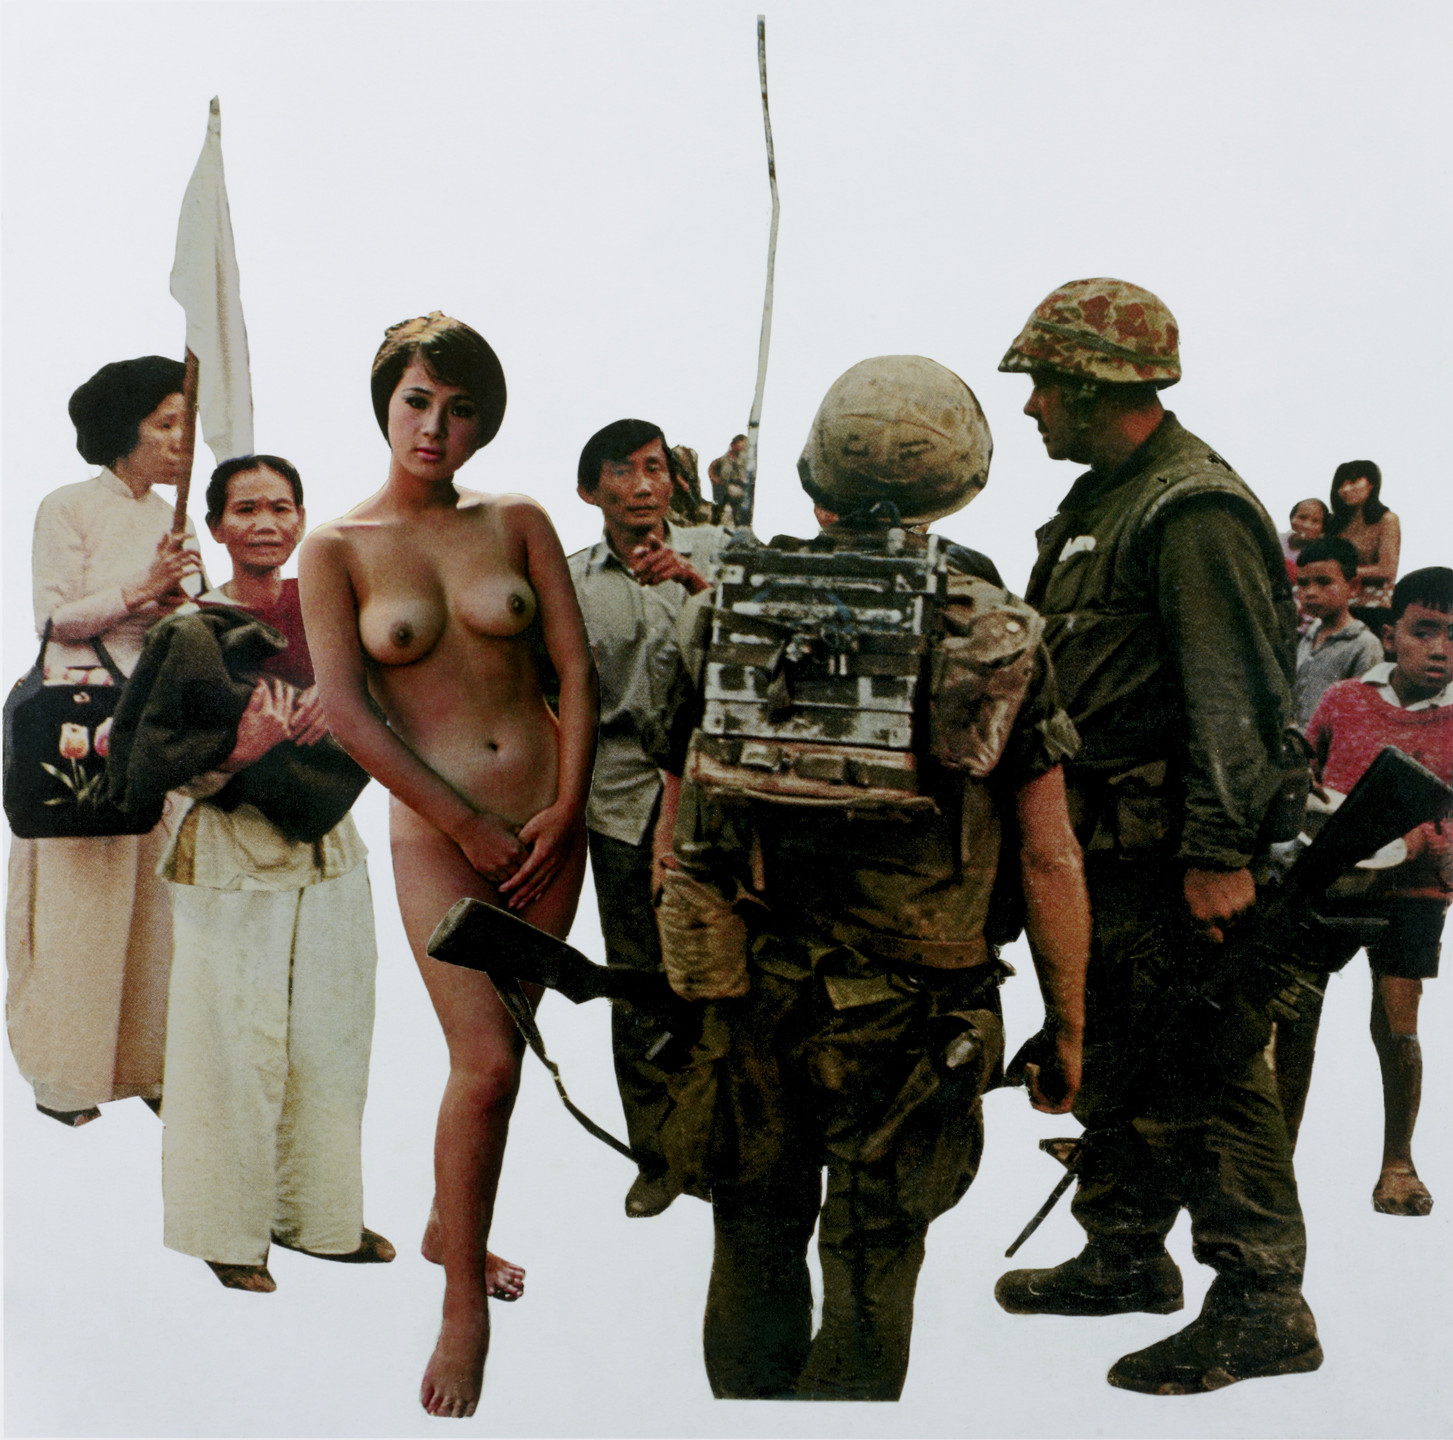 Martha Rosler. Playboy (On View) from the series House Beautiful: Bringing the War Home, in Vietnam. c. 1967-72